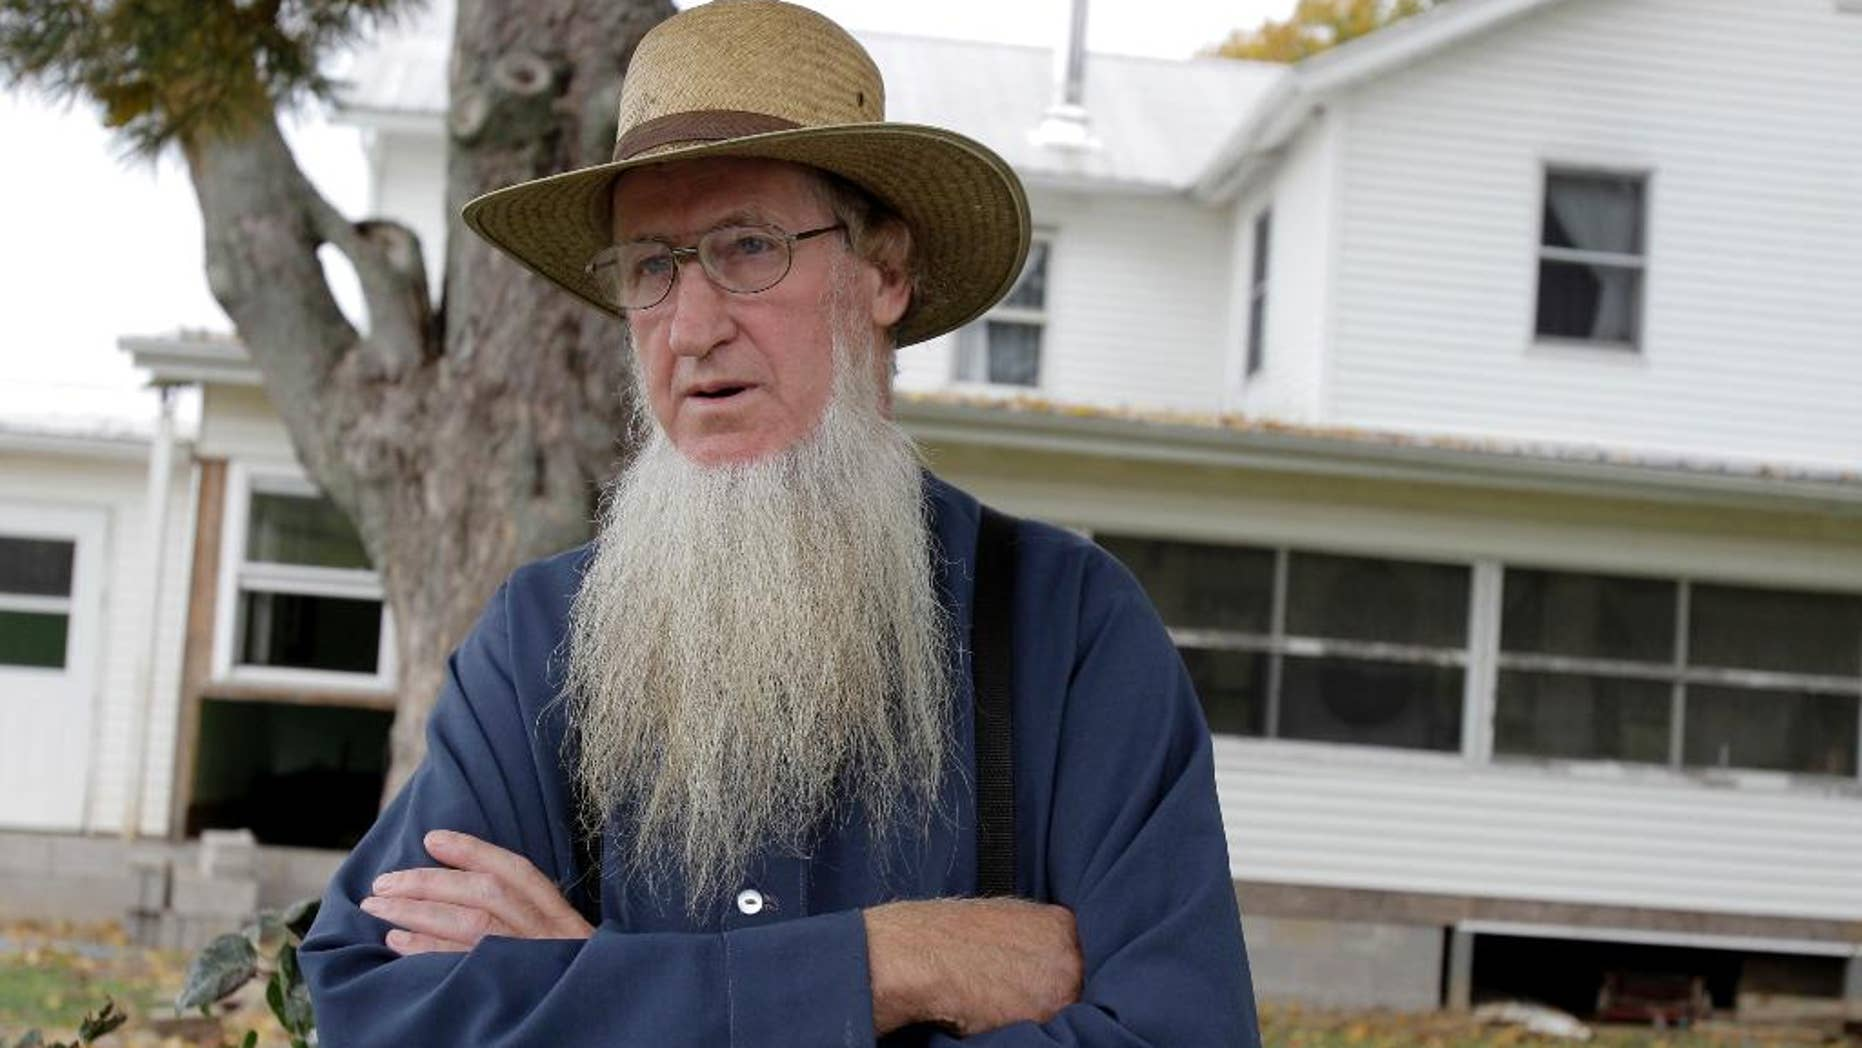 FILE - In this Oct. 10, 2011 file photo, Sam Mullet stands in front of his home in Bergholz, Ohio. Mullet, the leader of a breakaway Amish group in Ohio whose hate crime convictions for beard- and hair-cutting attacks were overturned, wants a federal judge to release him from prison when he's resentenced next month. All 16 members found guilty in the attacks that targeted Amish who had criticized them are to be resentenced March 2 in Cleveland since the 6th U.S. Circuit Court of Appeals overturned the most serious convictions against them. Defense attorneys for Mullet said his 15-year sentence should be reduced to the three years he's already served. (AP Photo/Amy Sancetta, File)